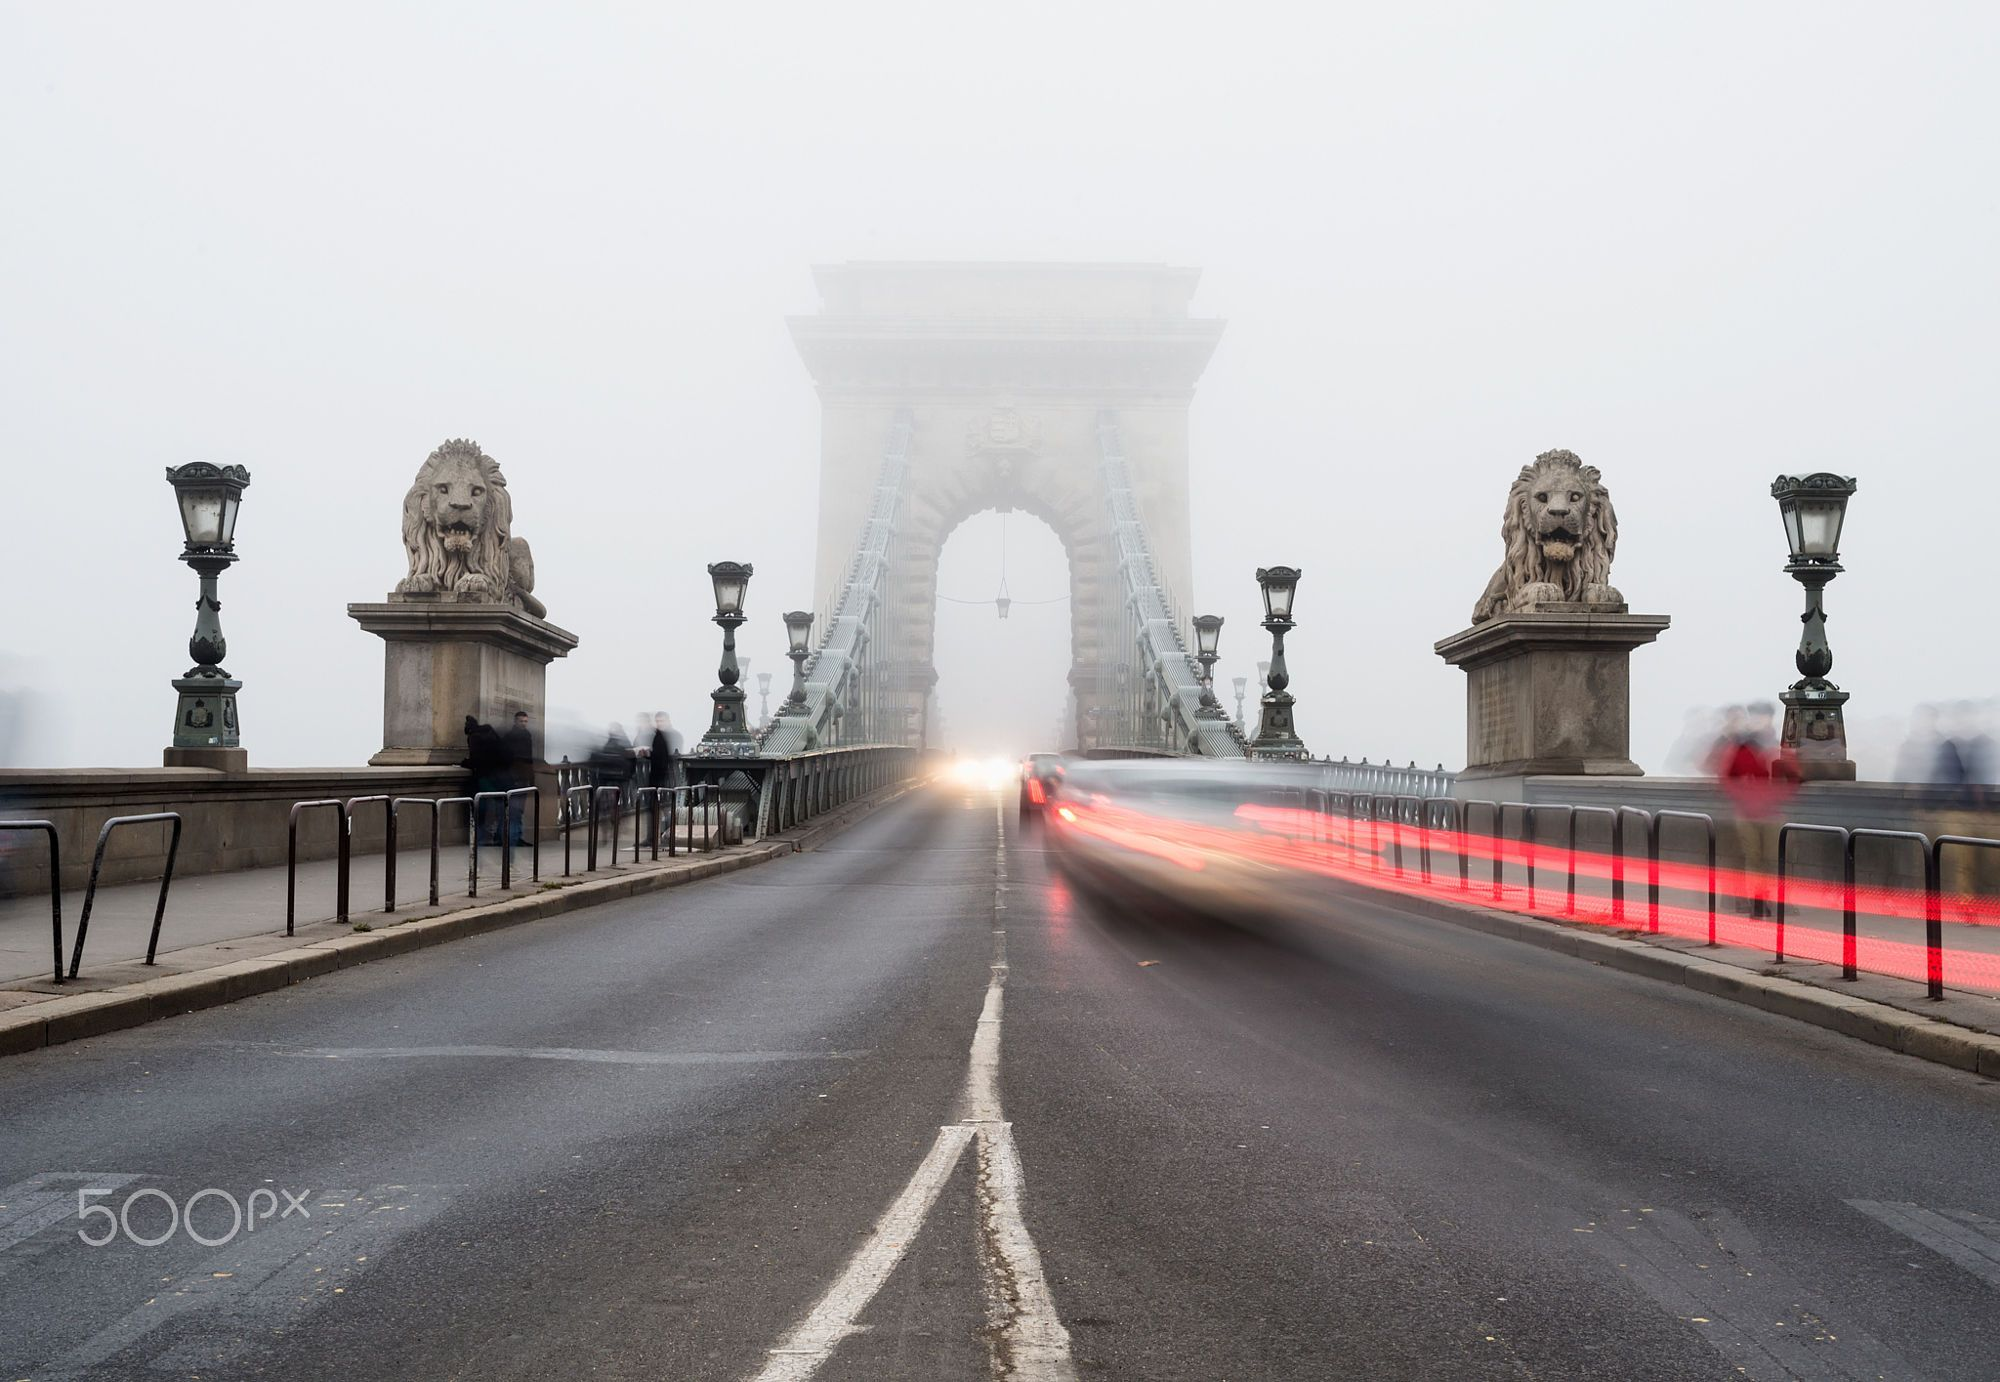 BUDAPEST, HUNGARY - 26, DECEMBER. Chain Bridge in Budapest, Hungary, in the fog. Traffic lights and  by Anna Ivanova on 500px